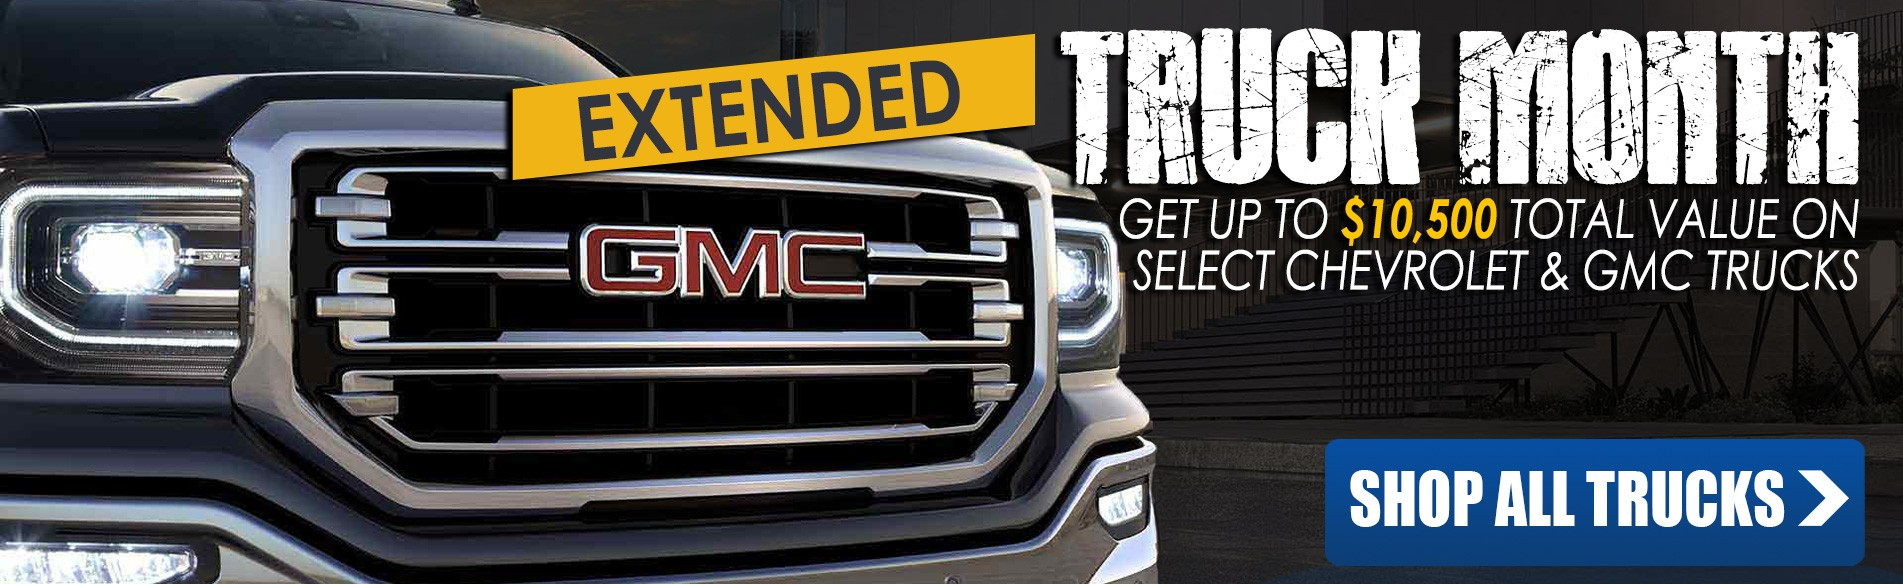 Great deals on new Chevrolet and GMC pickup trucks in Georgetown Ontario at Finch Chevrolet